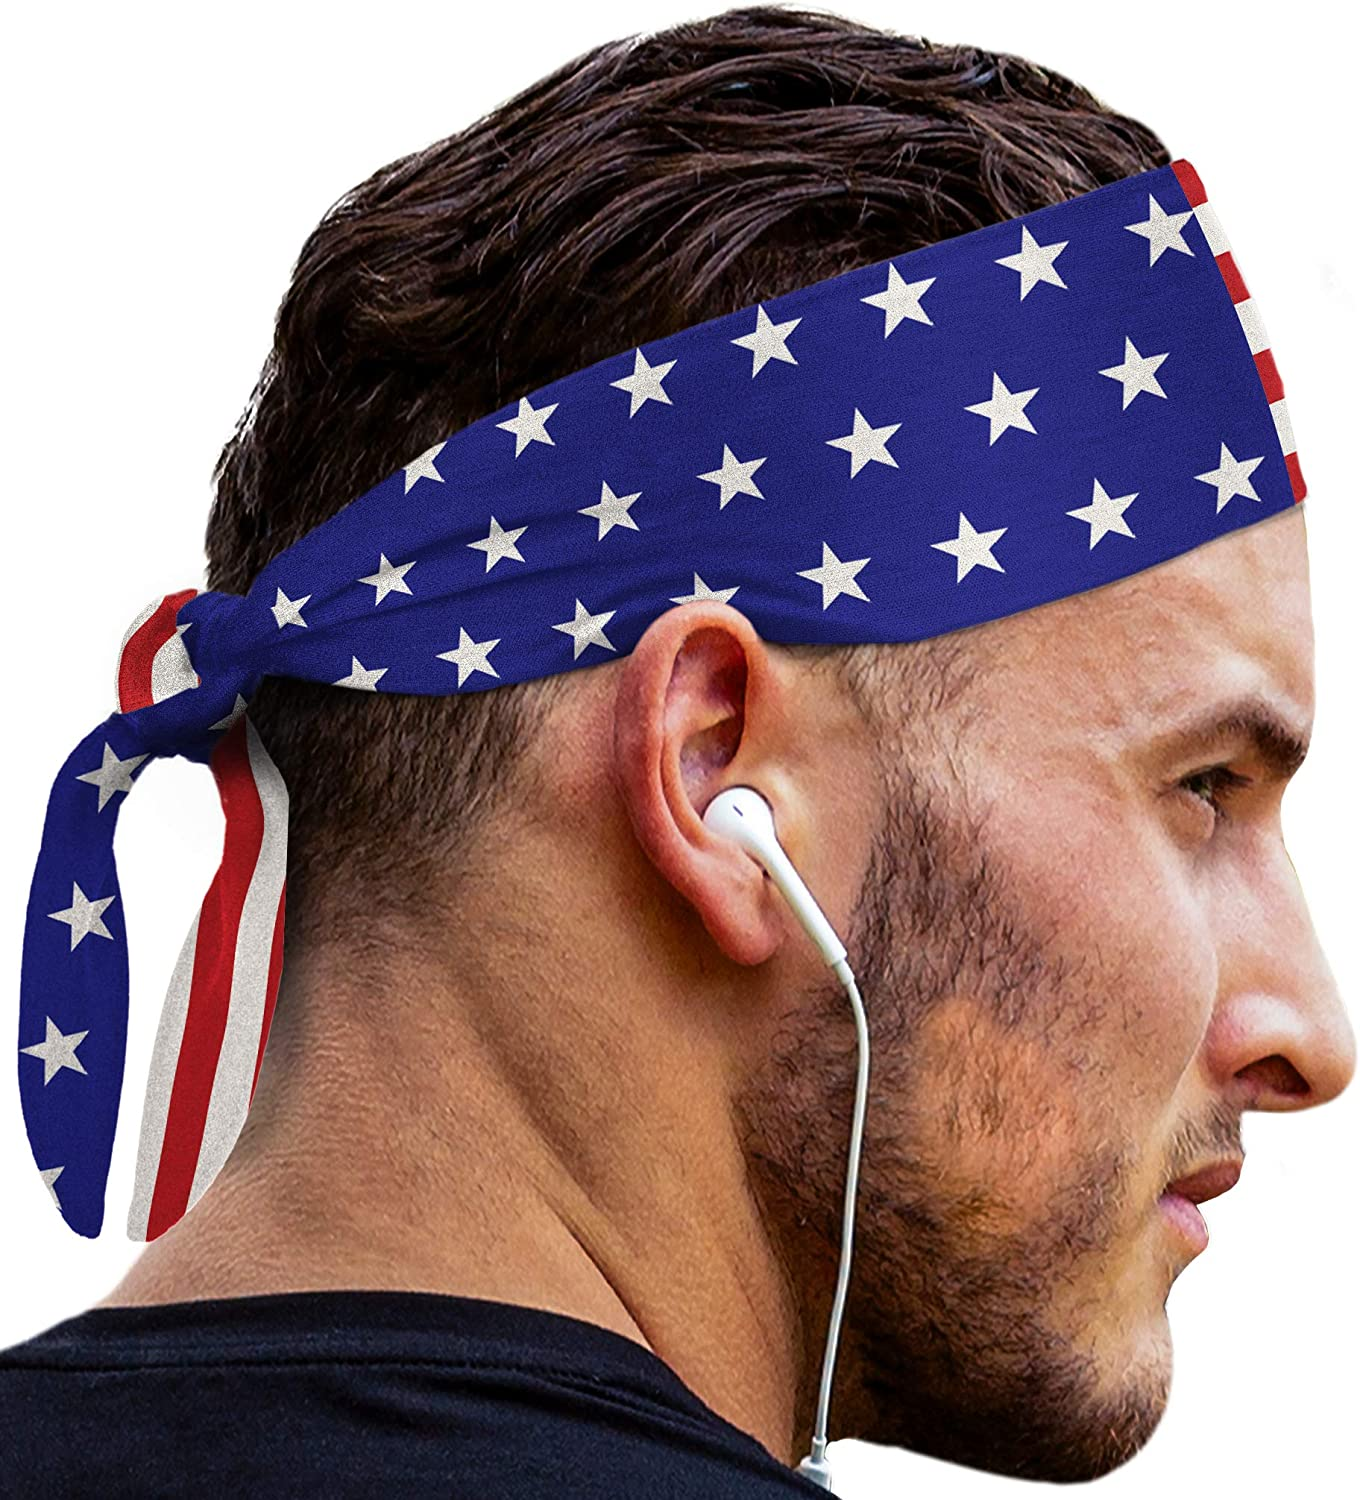 Head Tie Headbands: UNISEX Design With Sweat Wicking Fabric to Keep your Head Dry & Cool |Fits ALL HEAD SIZES| Headband Stays Securely in Place | Fits ALL HEAD SIZES | Fits Under Sports & Bike Helmets